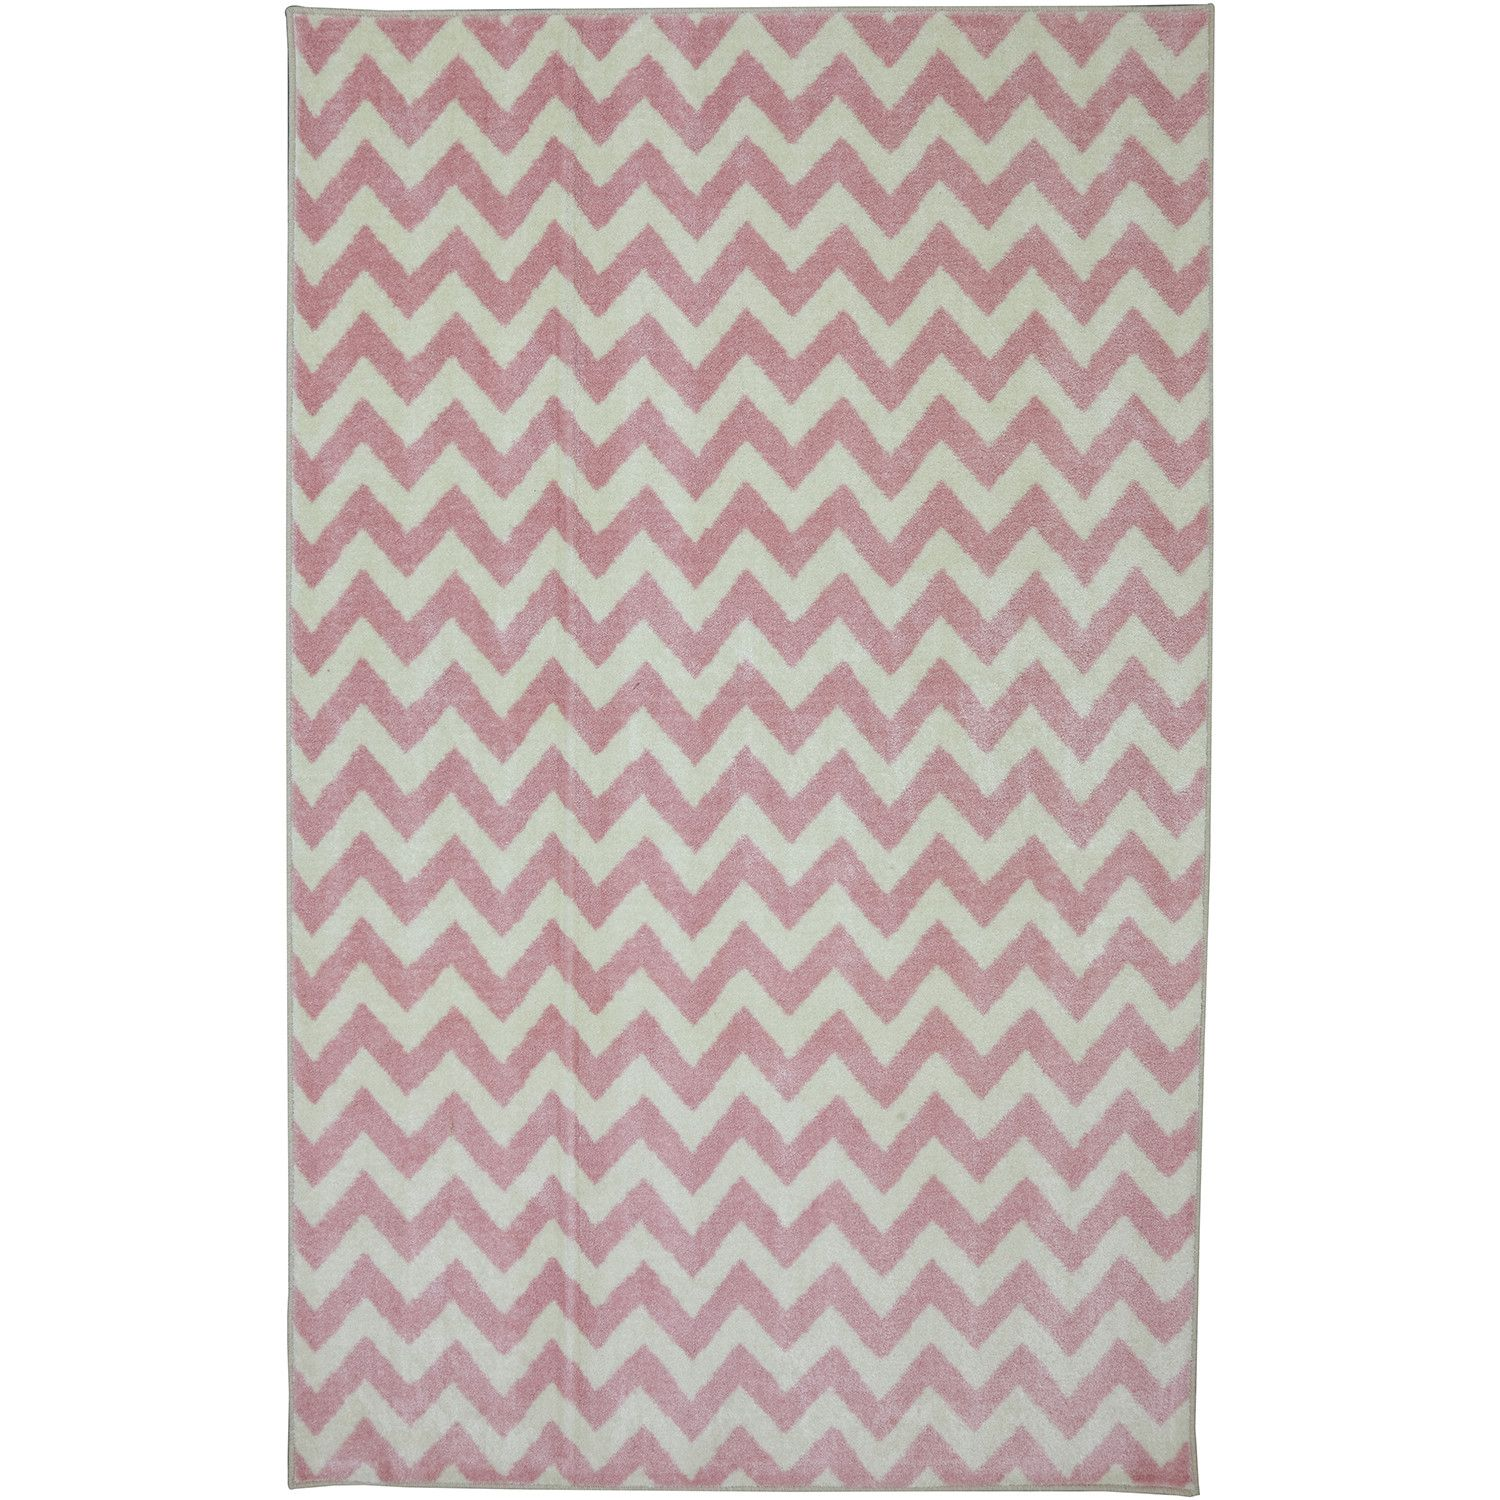 FREE SHIPPING! Shop Wayfair for American Rug Craftsmen Crib 2 College Fun Lines Pink Area Rug - Great Deals on all Decor products with the best selection to choose from!